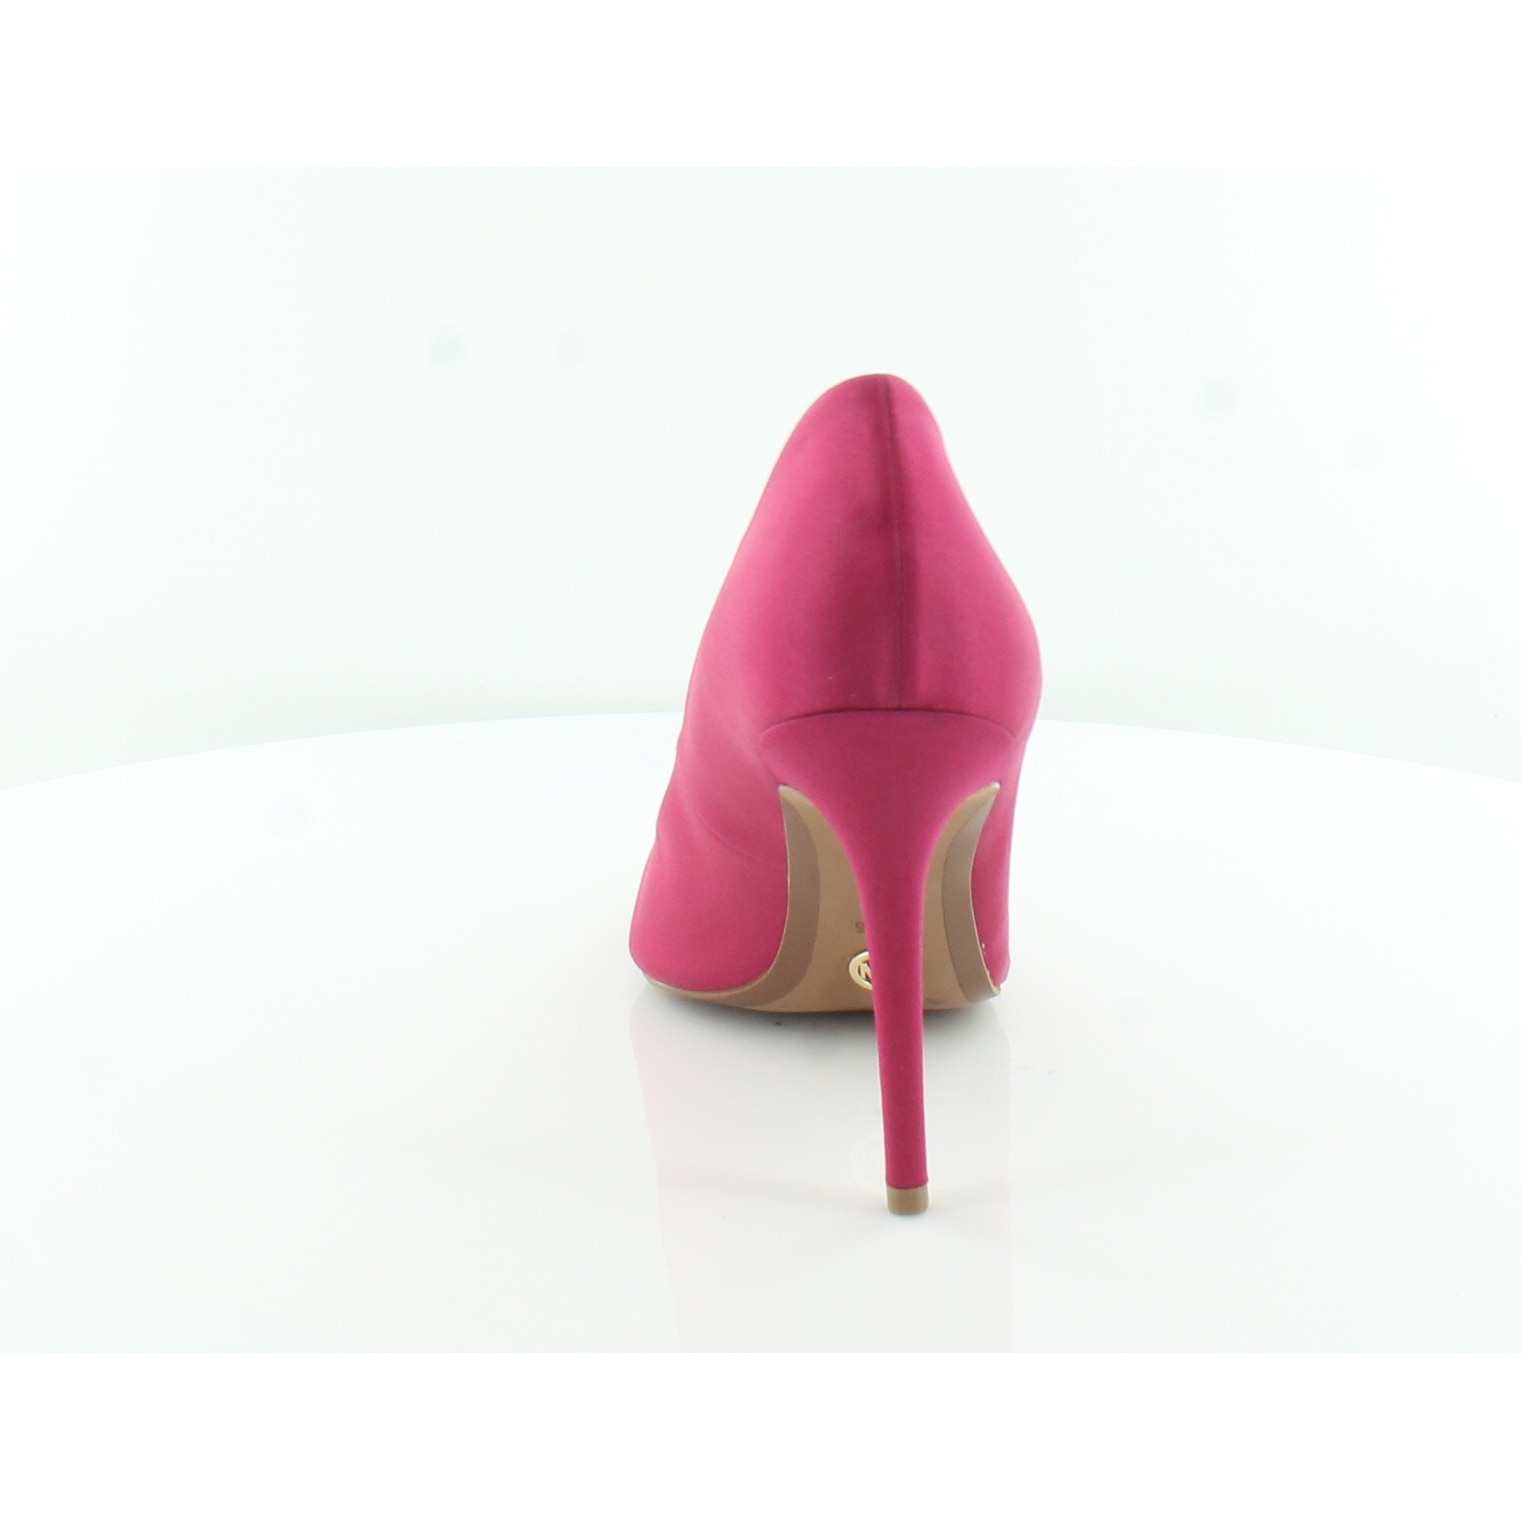 d9bd53499f4 Shop Michael Kors Claire Pump Women s Heels Ultra Pink - Free Shipping  Today - Overstock - 26389769